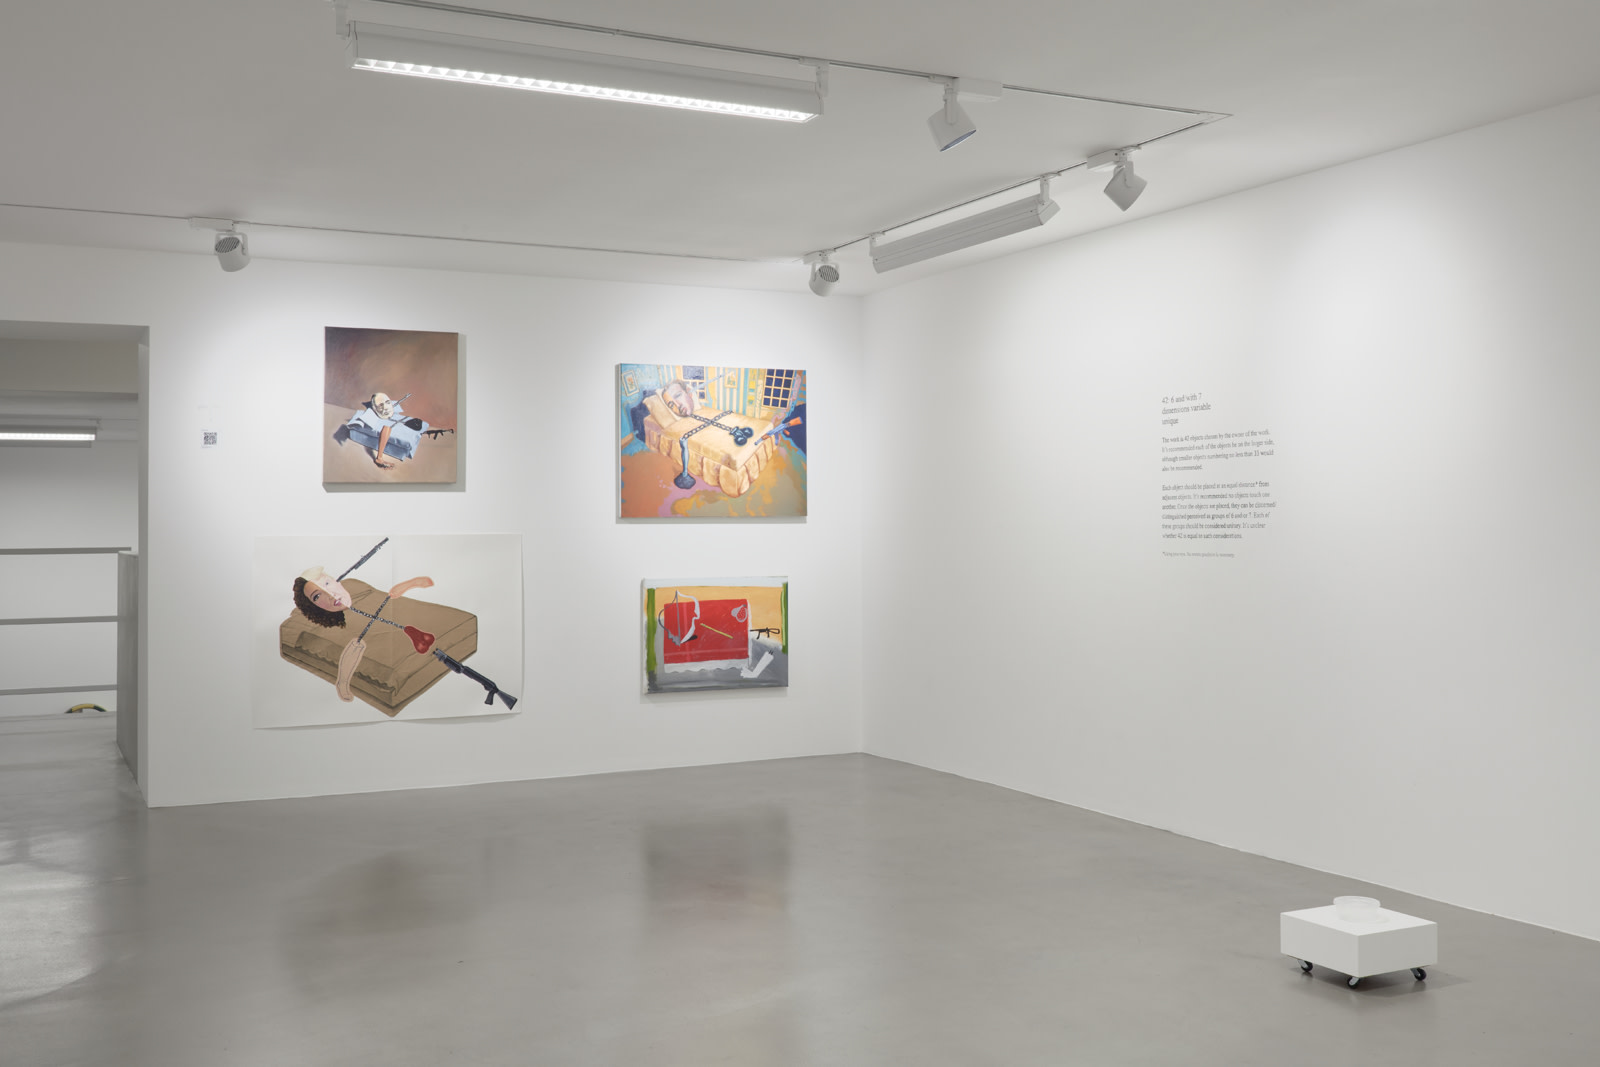 <p>Installation View, 2018<br />Photo by Robert Glowacki</p>